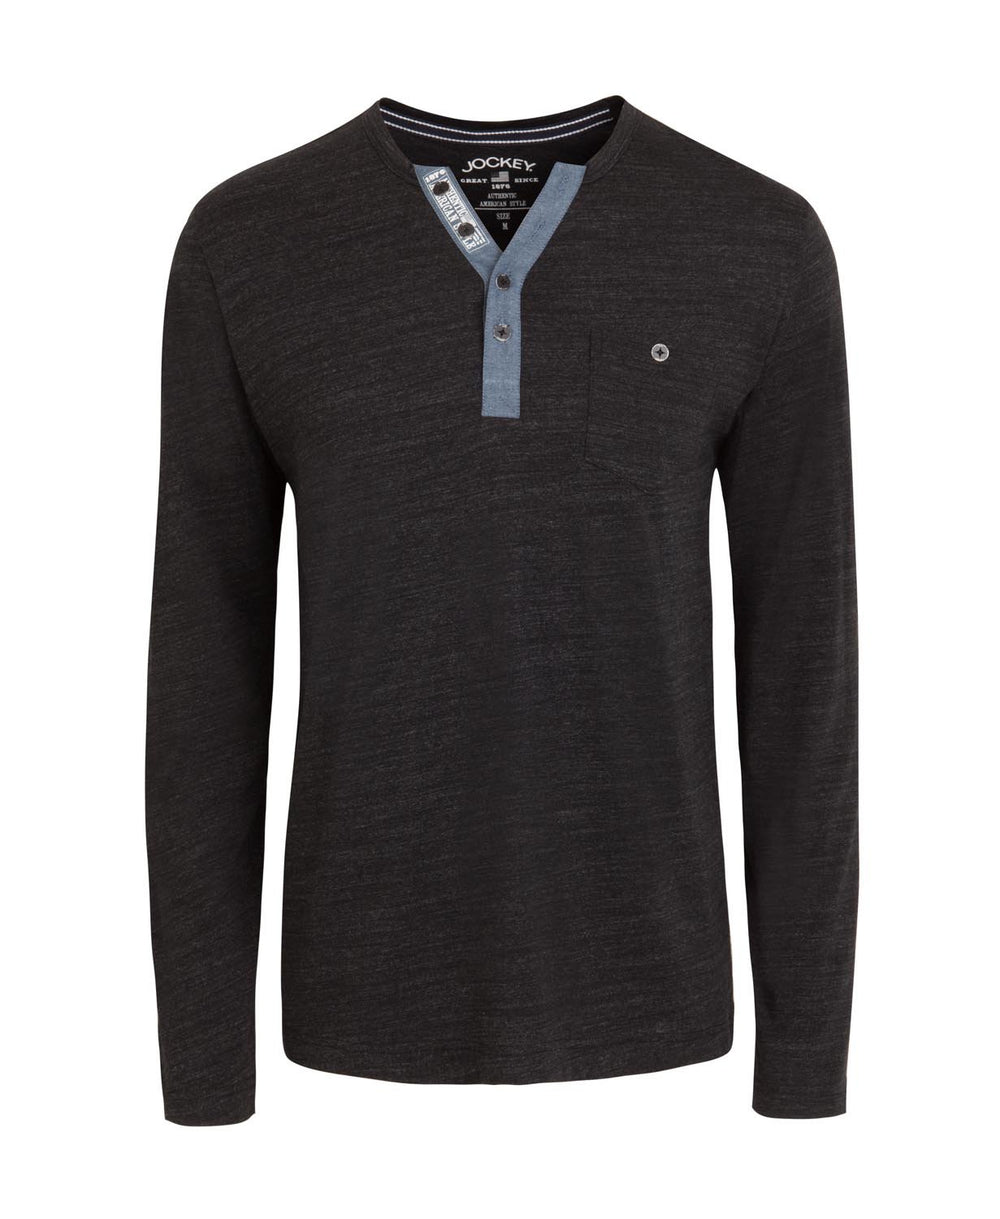 Jockey® Everyday Comfort Longsleeve Shirt